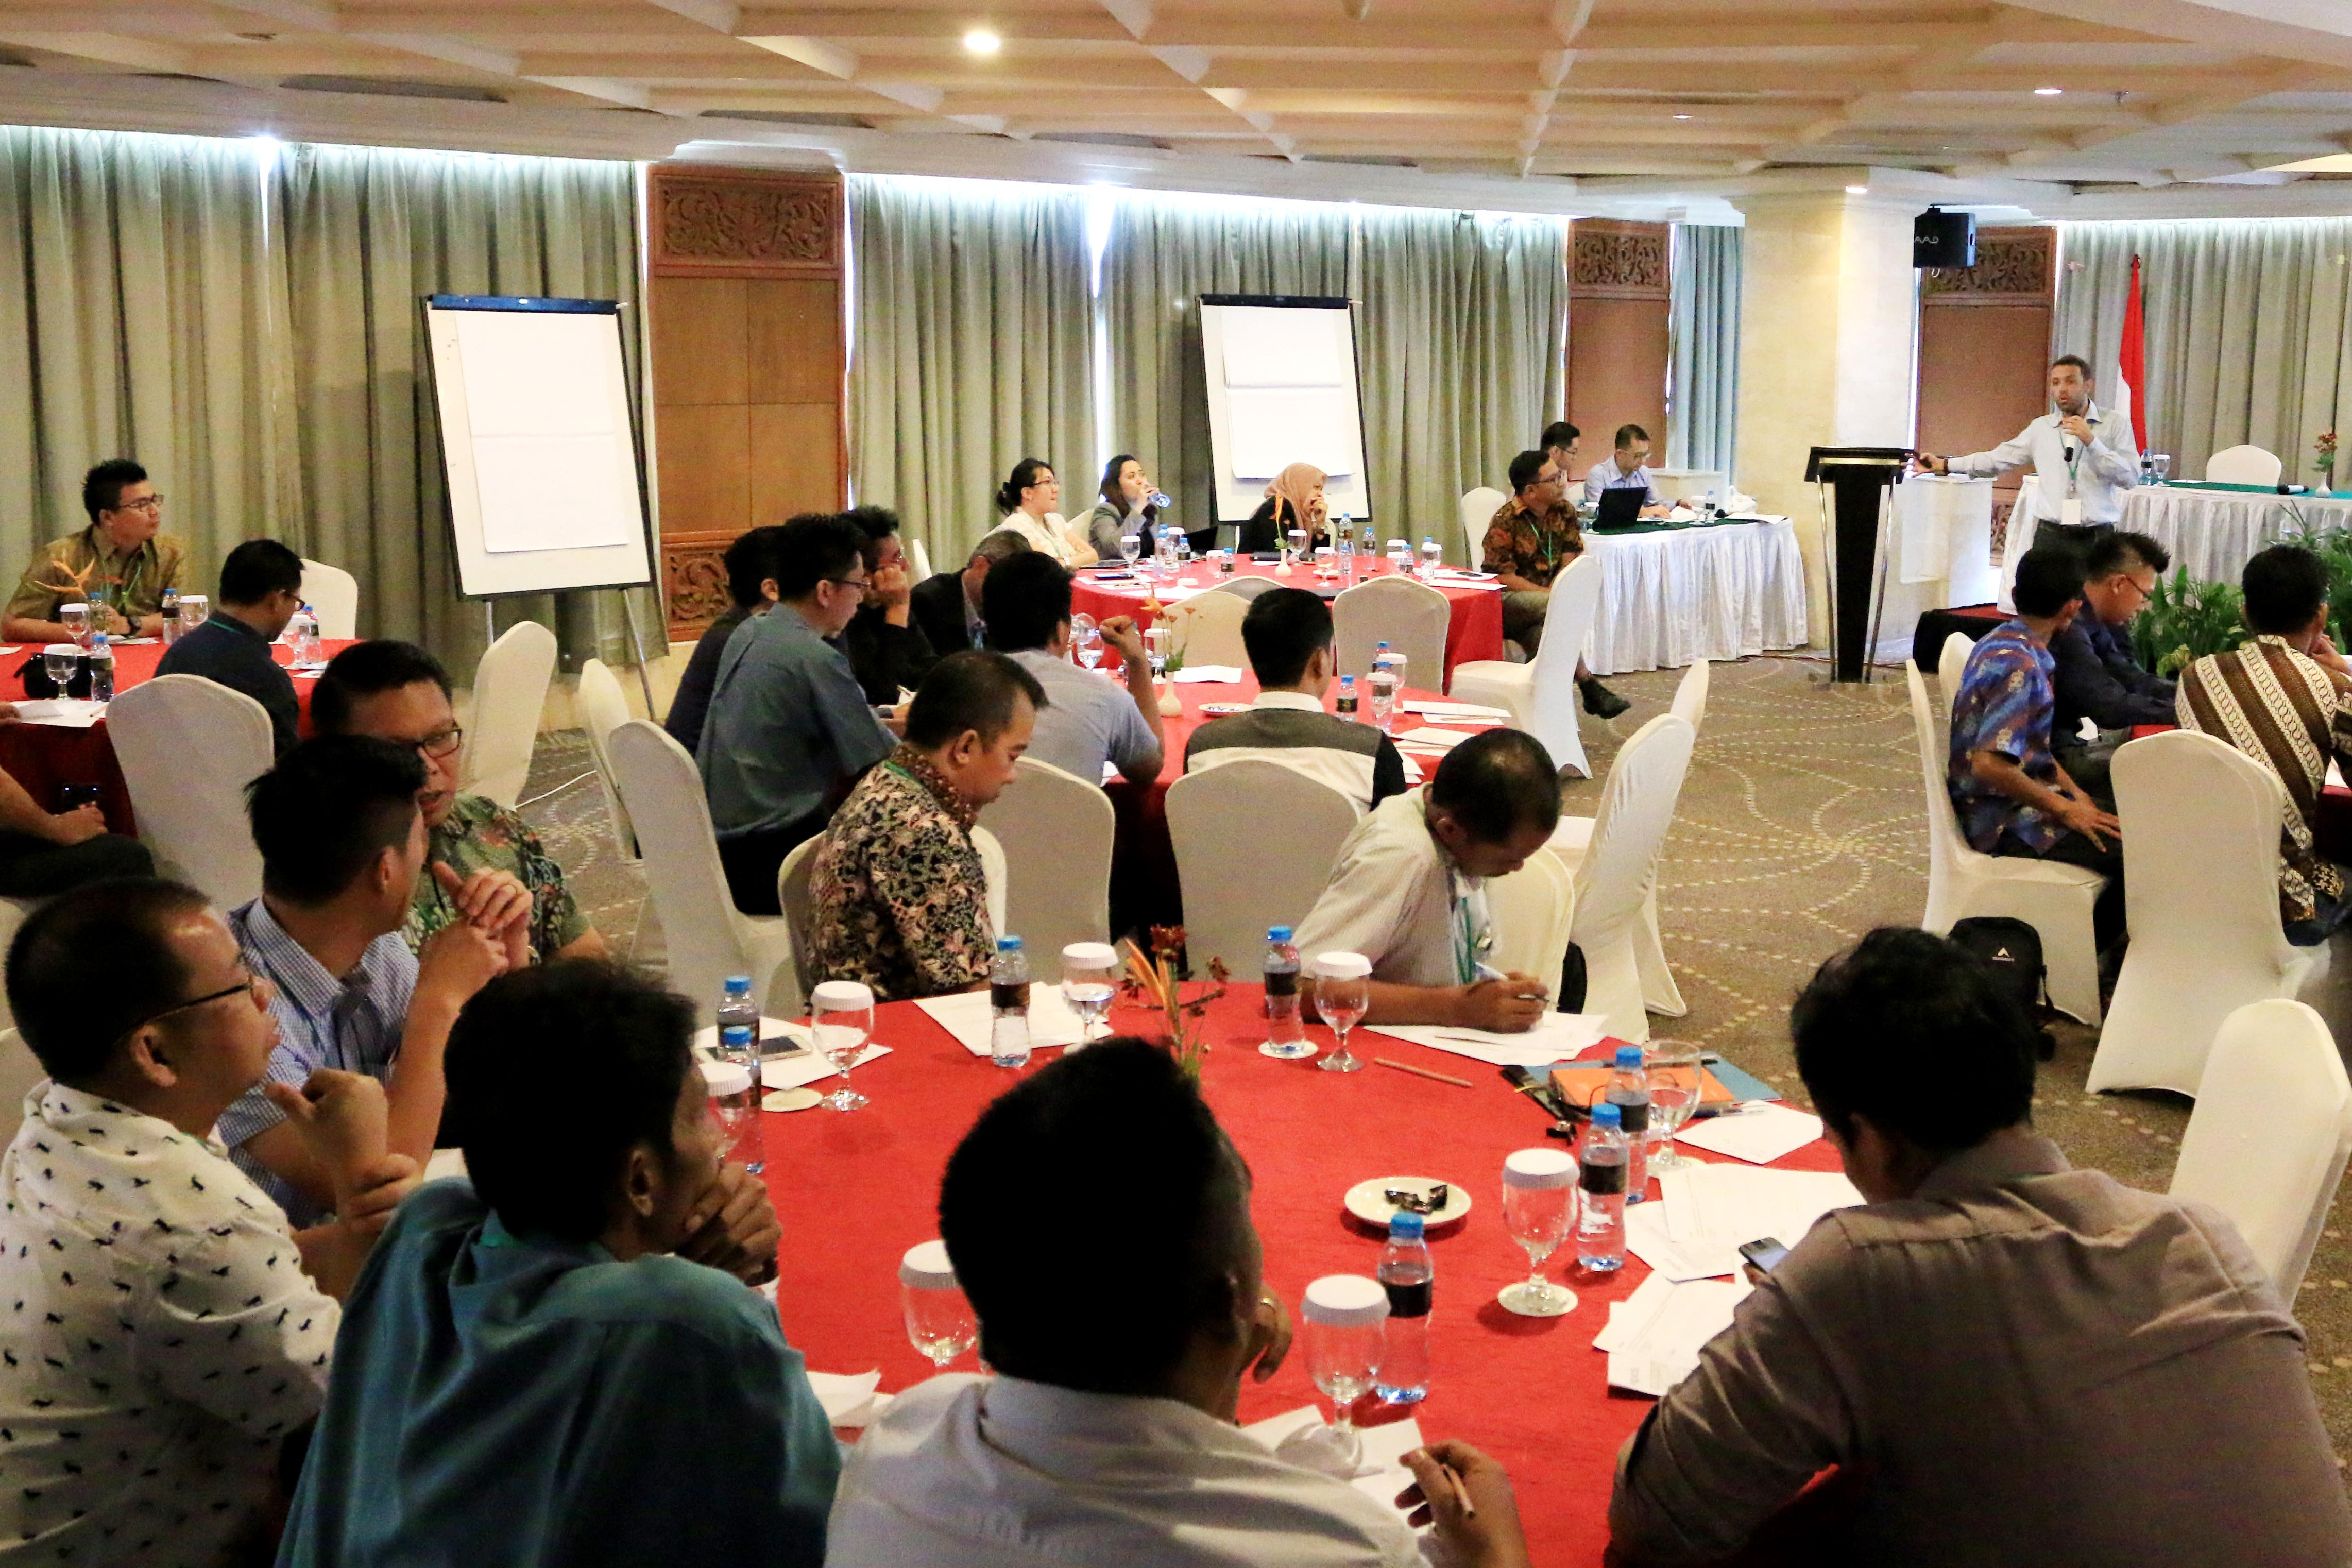 The inaugural Apical Shared Value Programme workshop for suppliers was held on Nov 2, 2016